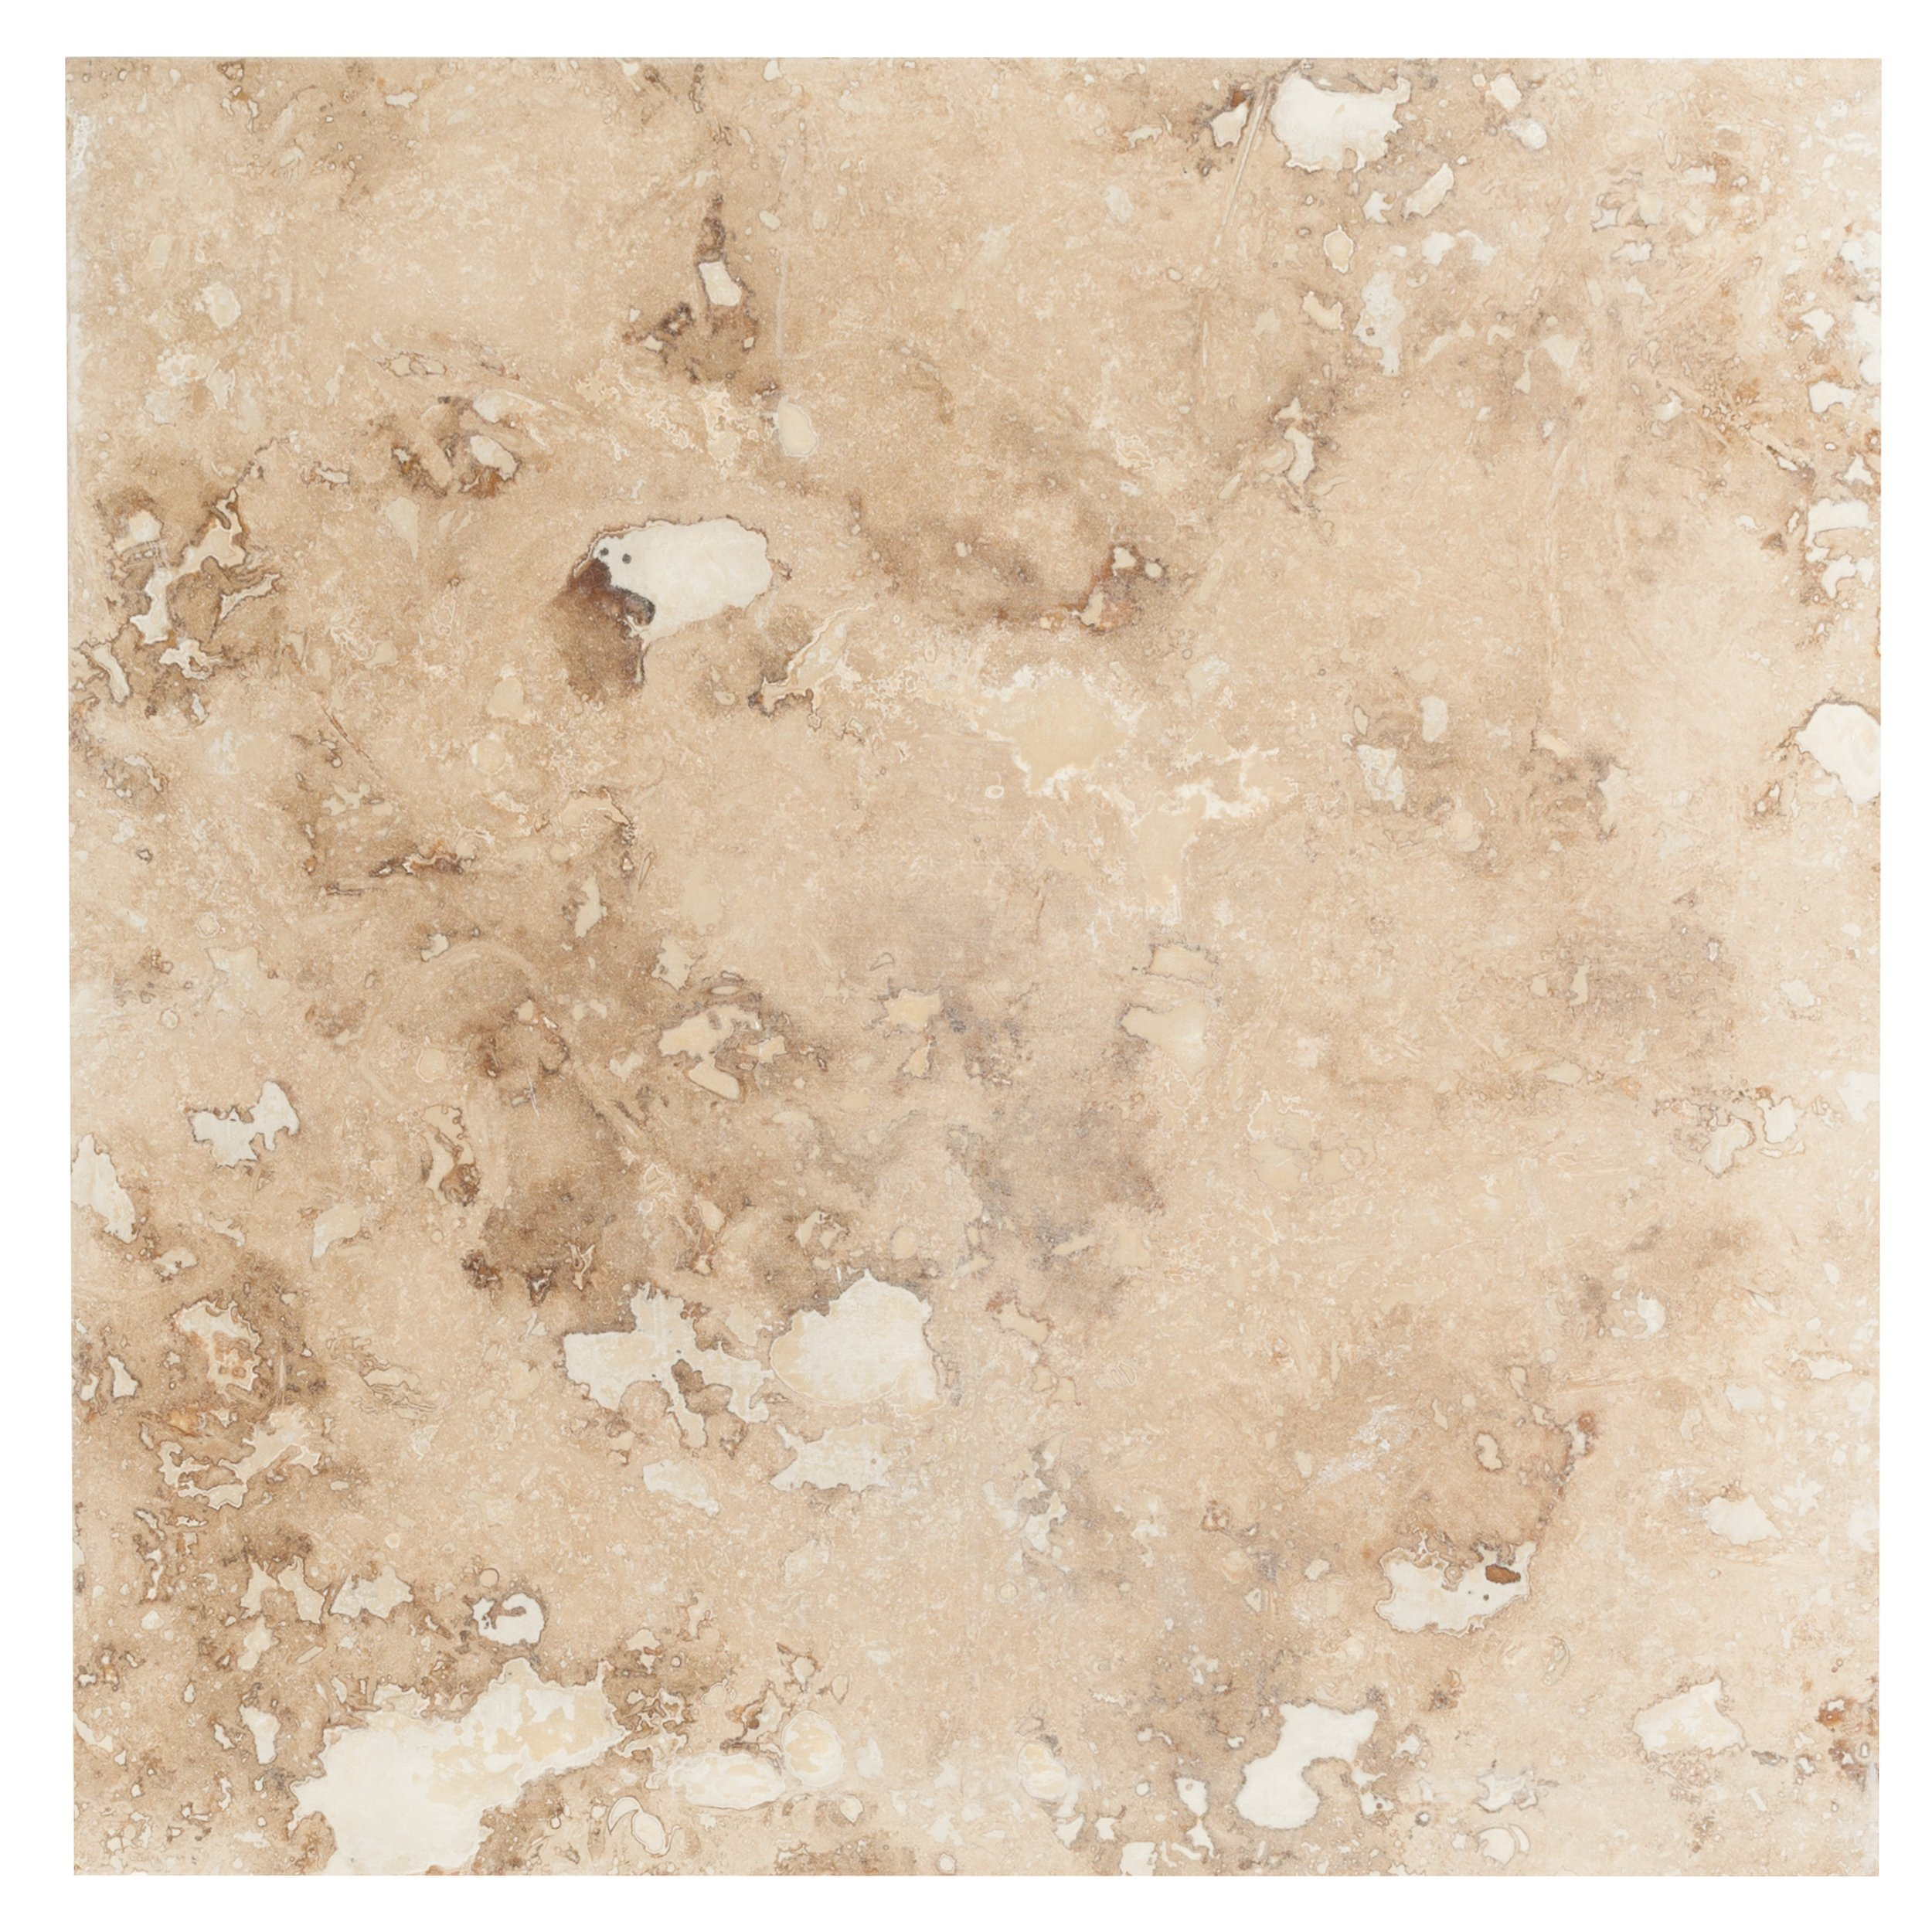 Paros honed filled travertine tile 18 x 18 100378140 floor and decor